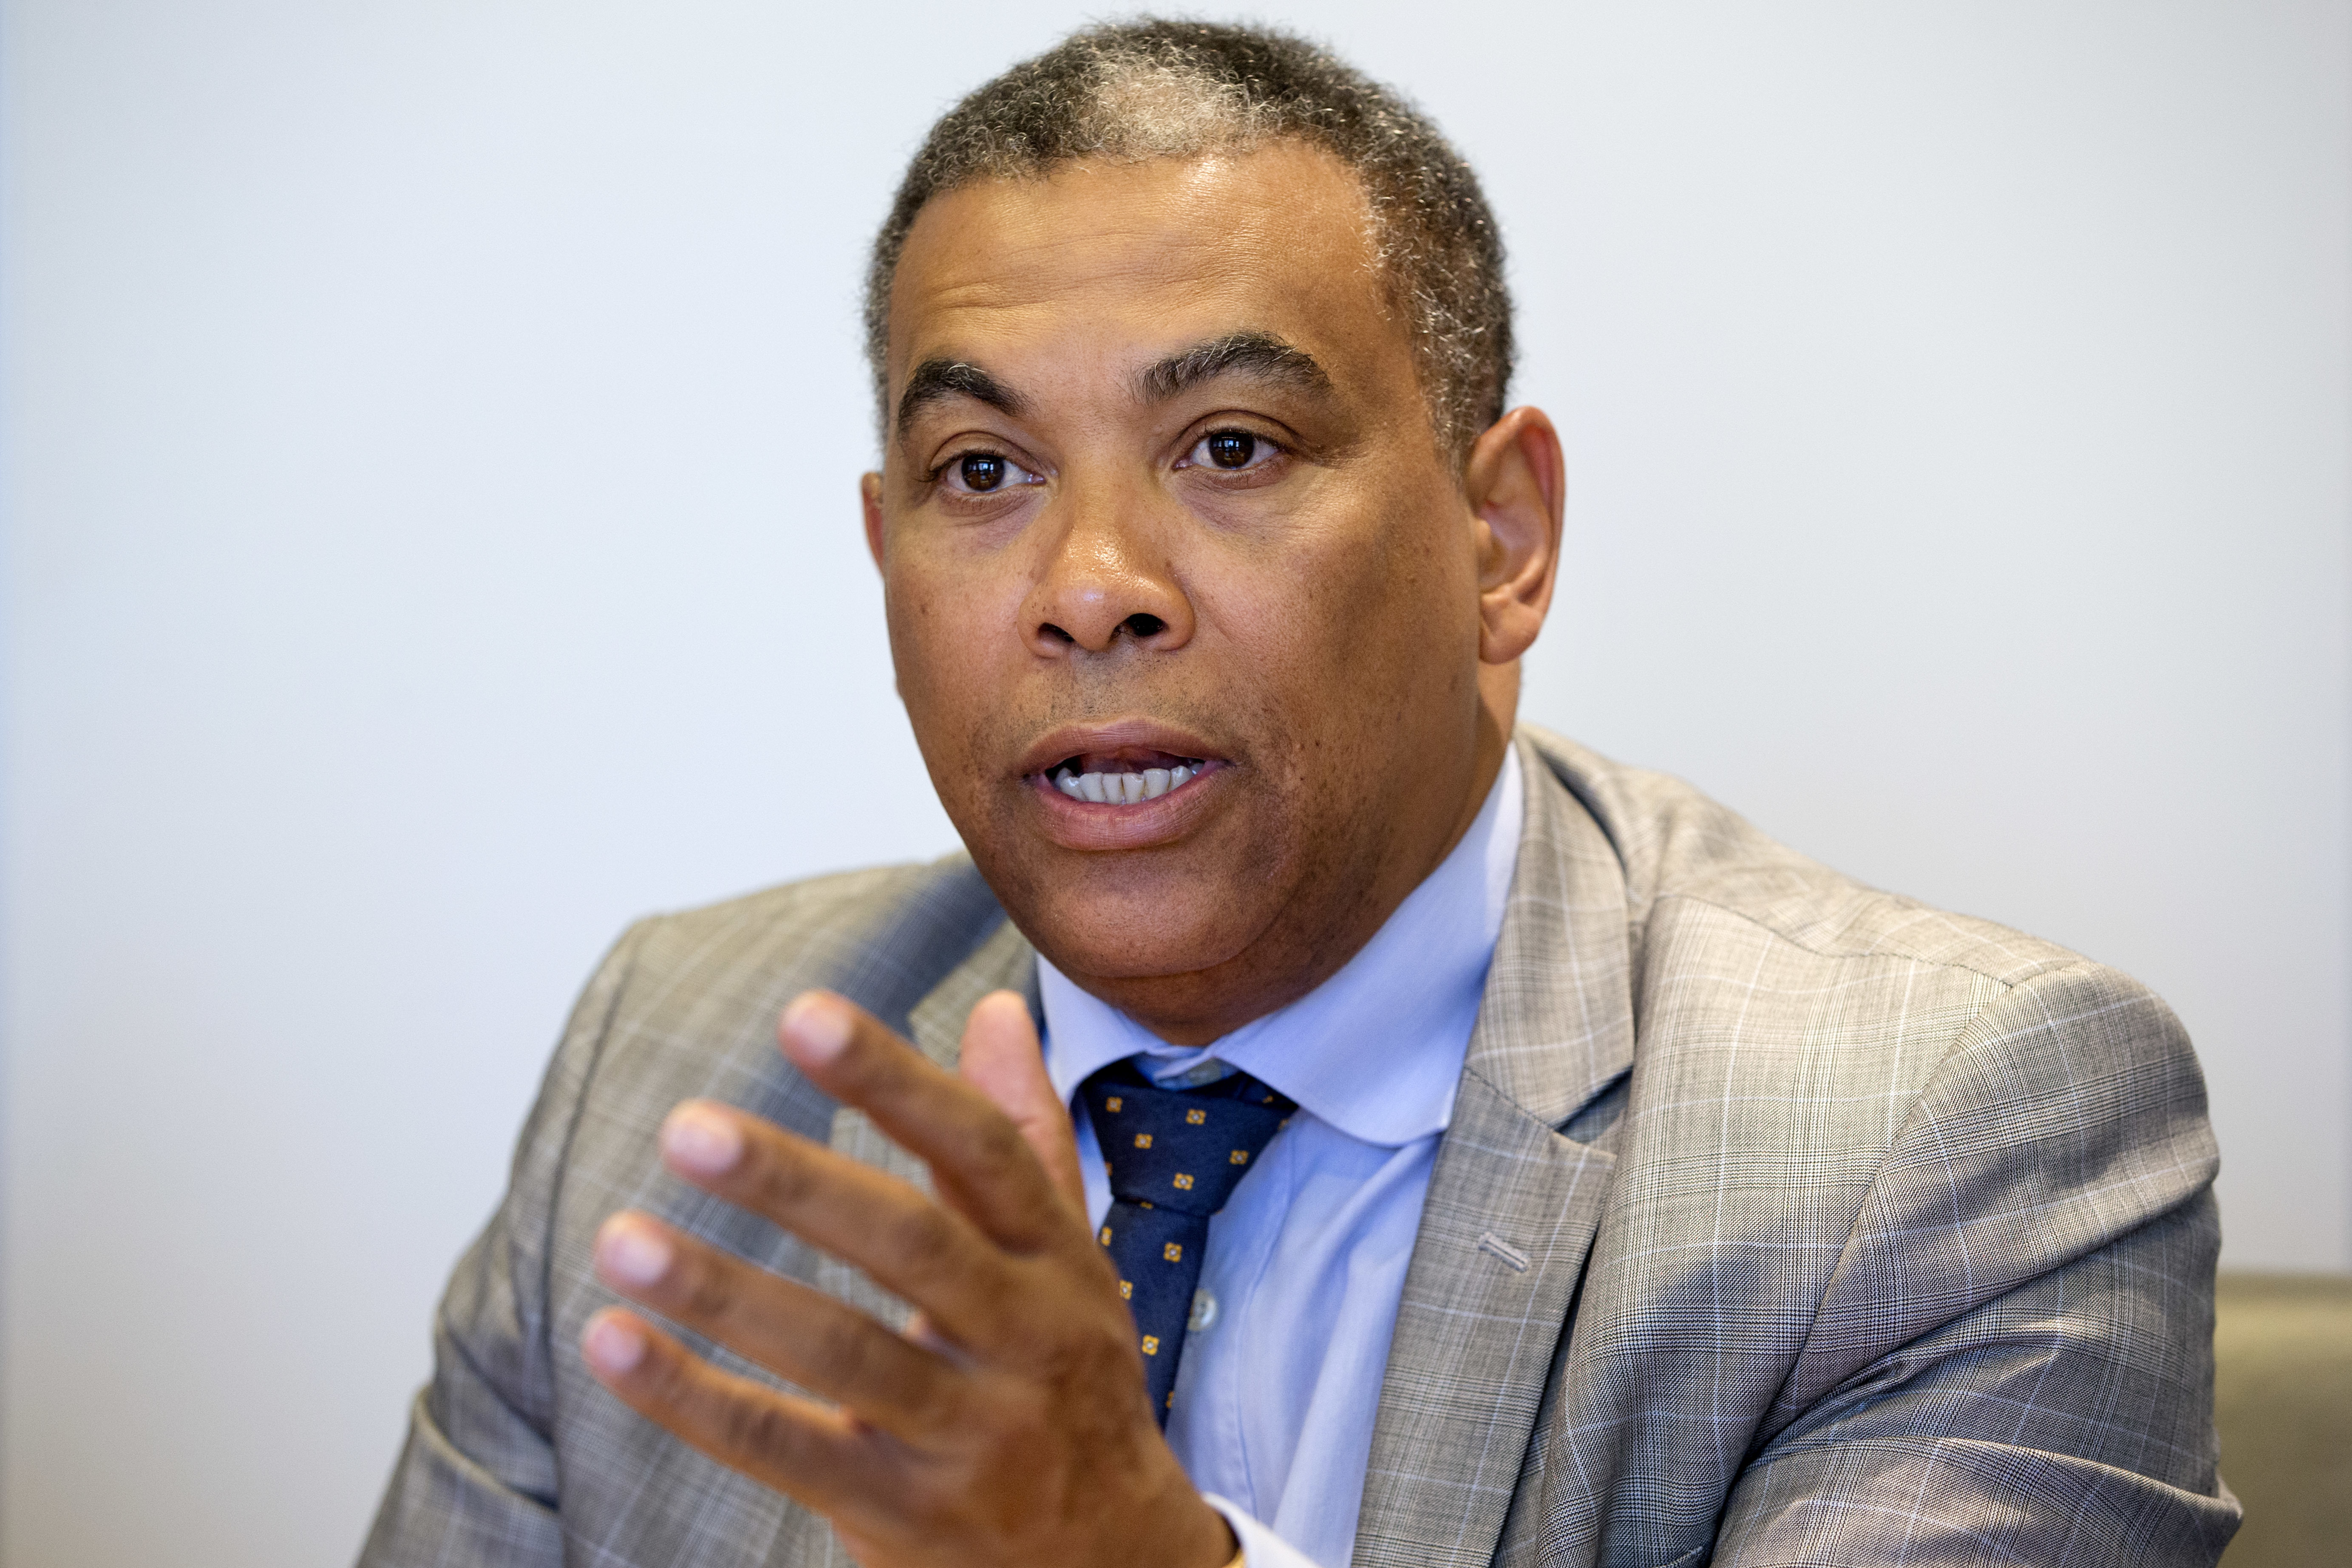 Olivier Kamitatu, Congo's former planning minister and an opponent of Congo's current president, speaks to the Associated Press in Washington, on May 16, 2016.